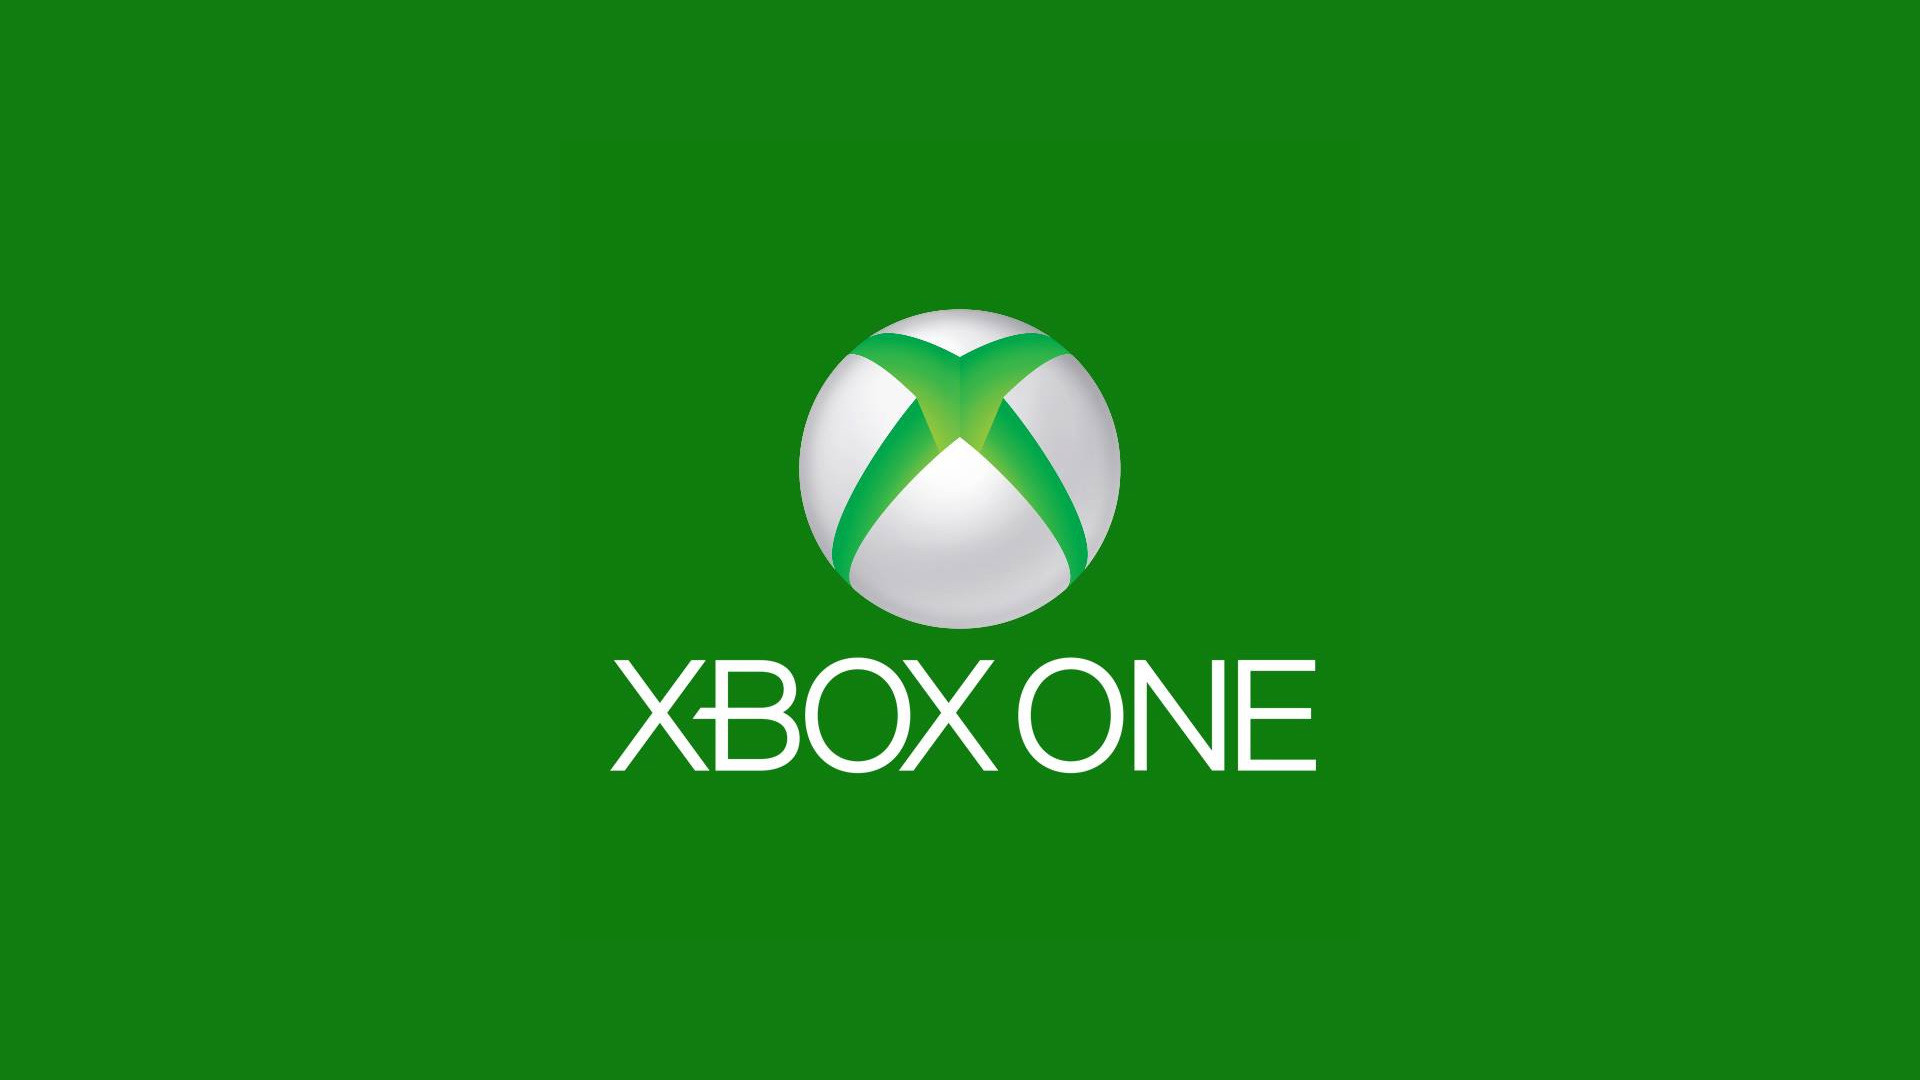 Xbox One Wallpaper 81 Images